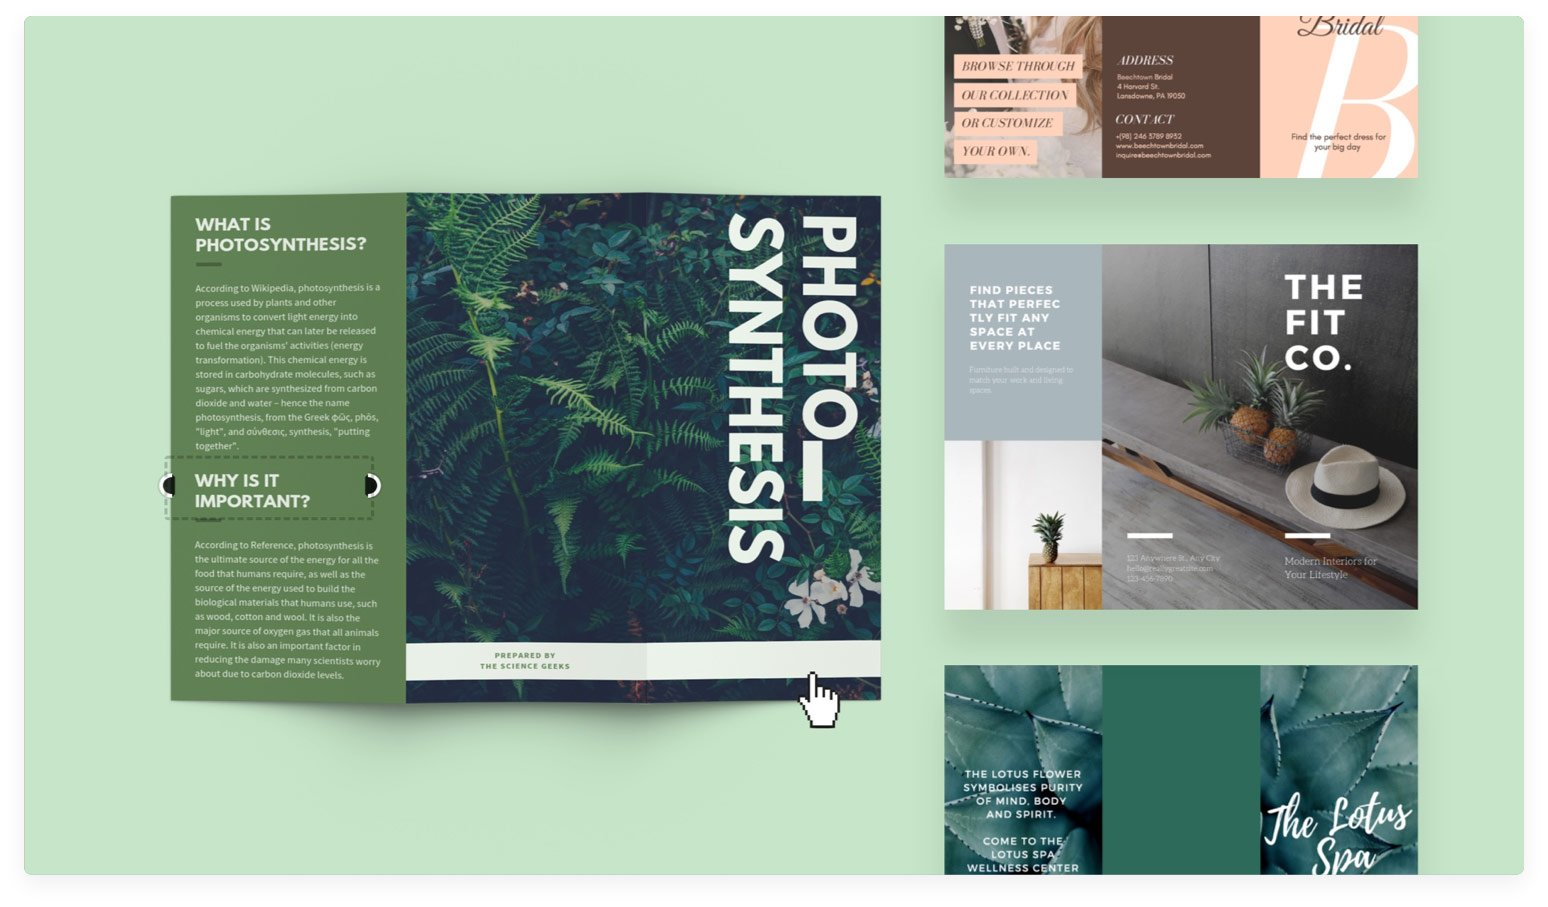 Free online brochure maker: Design a custom brochure in Canva